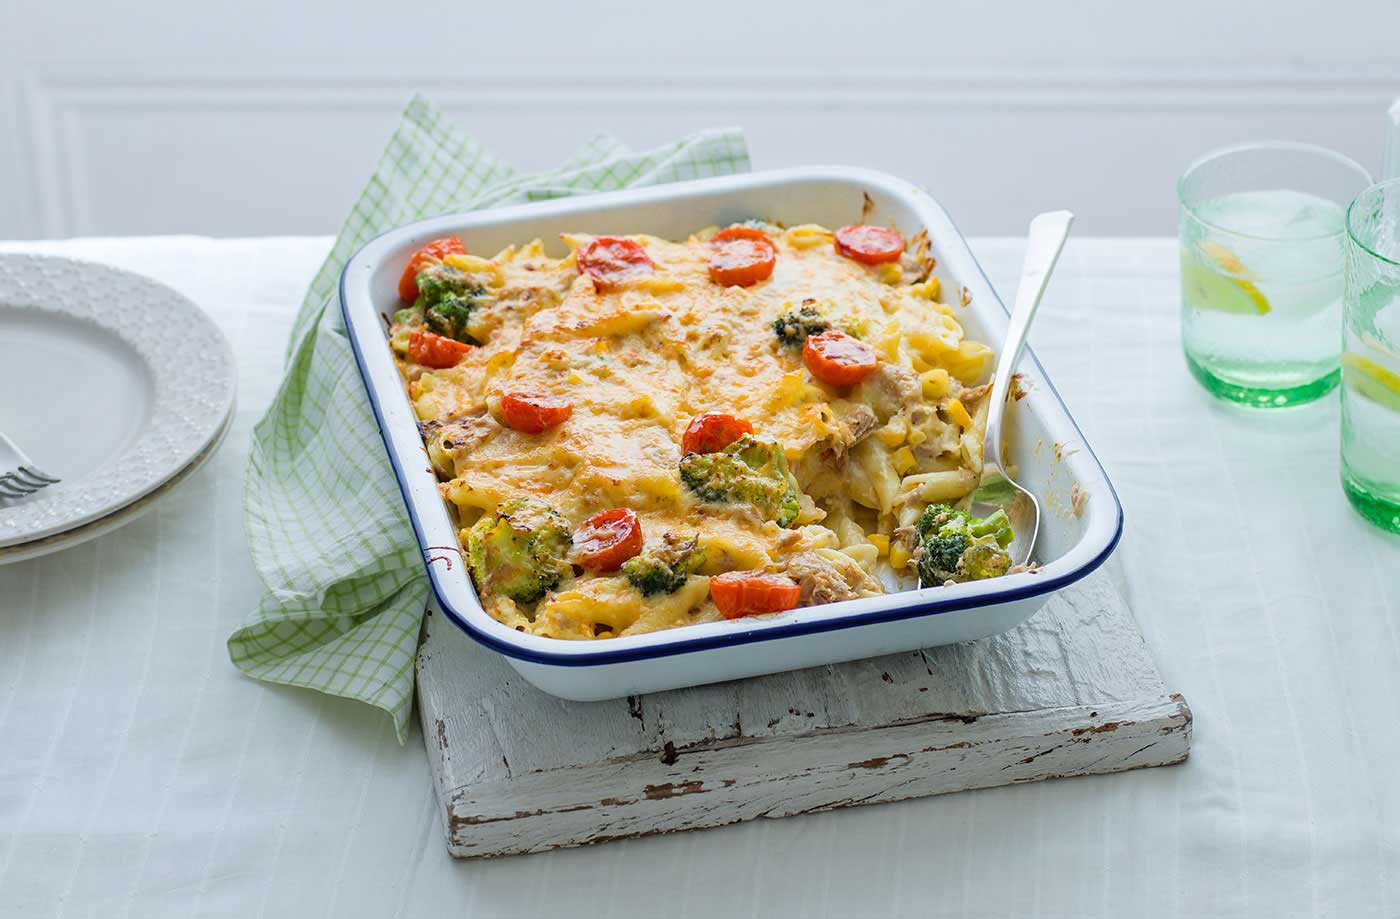 Rich and cheesy, this tuna pasta bake recipe is ideal for a busy weeknight.